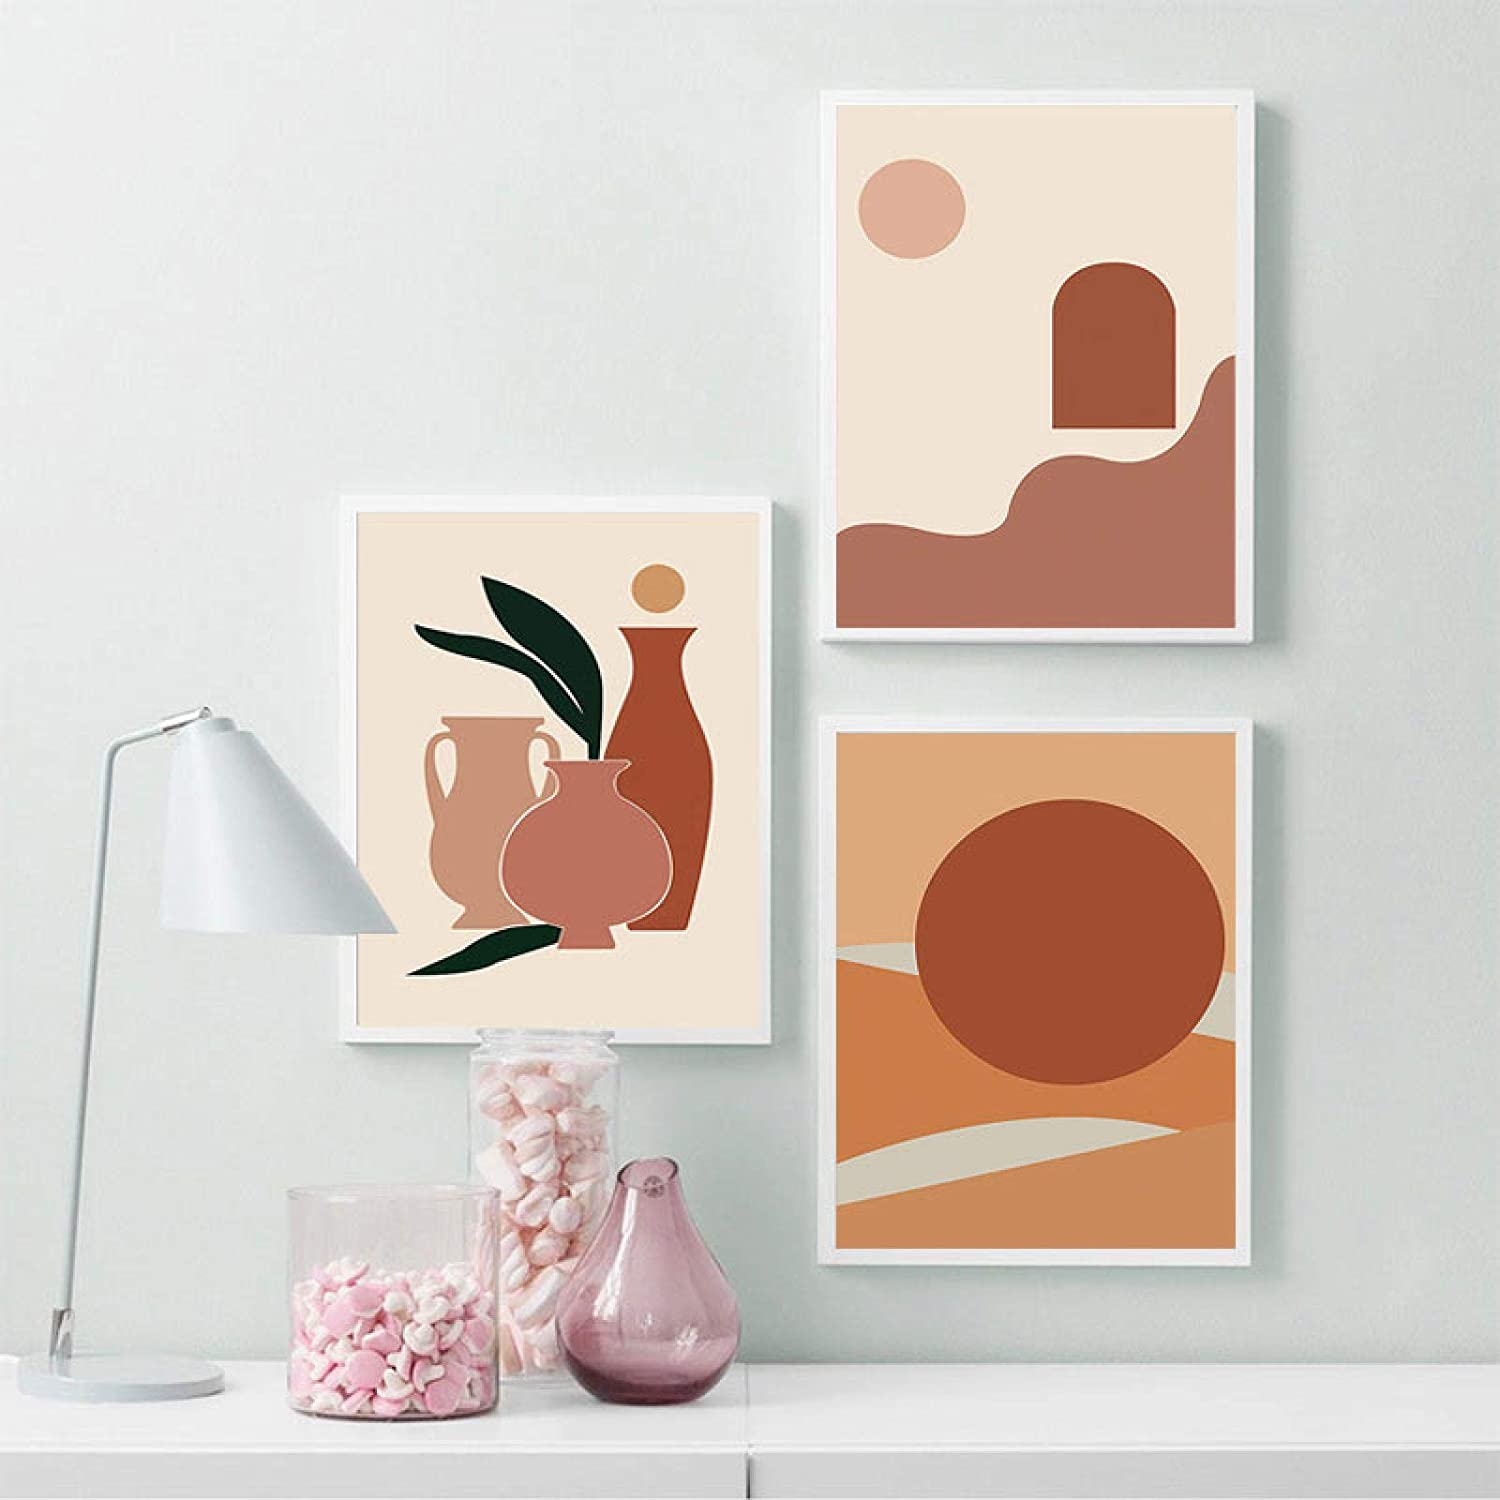 """YQLKC Fashion Girl Plants Leaves Illustration Wall Art Christmas Canvas Painting Nordic Poster Home Decor for Living Room 15.7""""x23.6""""(40x60cm) 3pcs with Frame"""